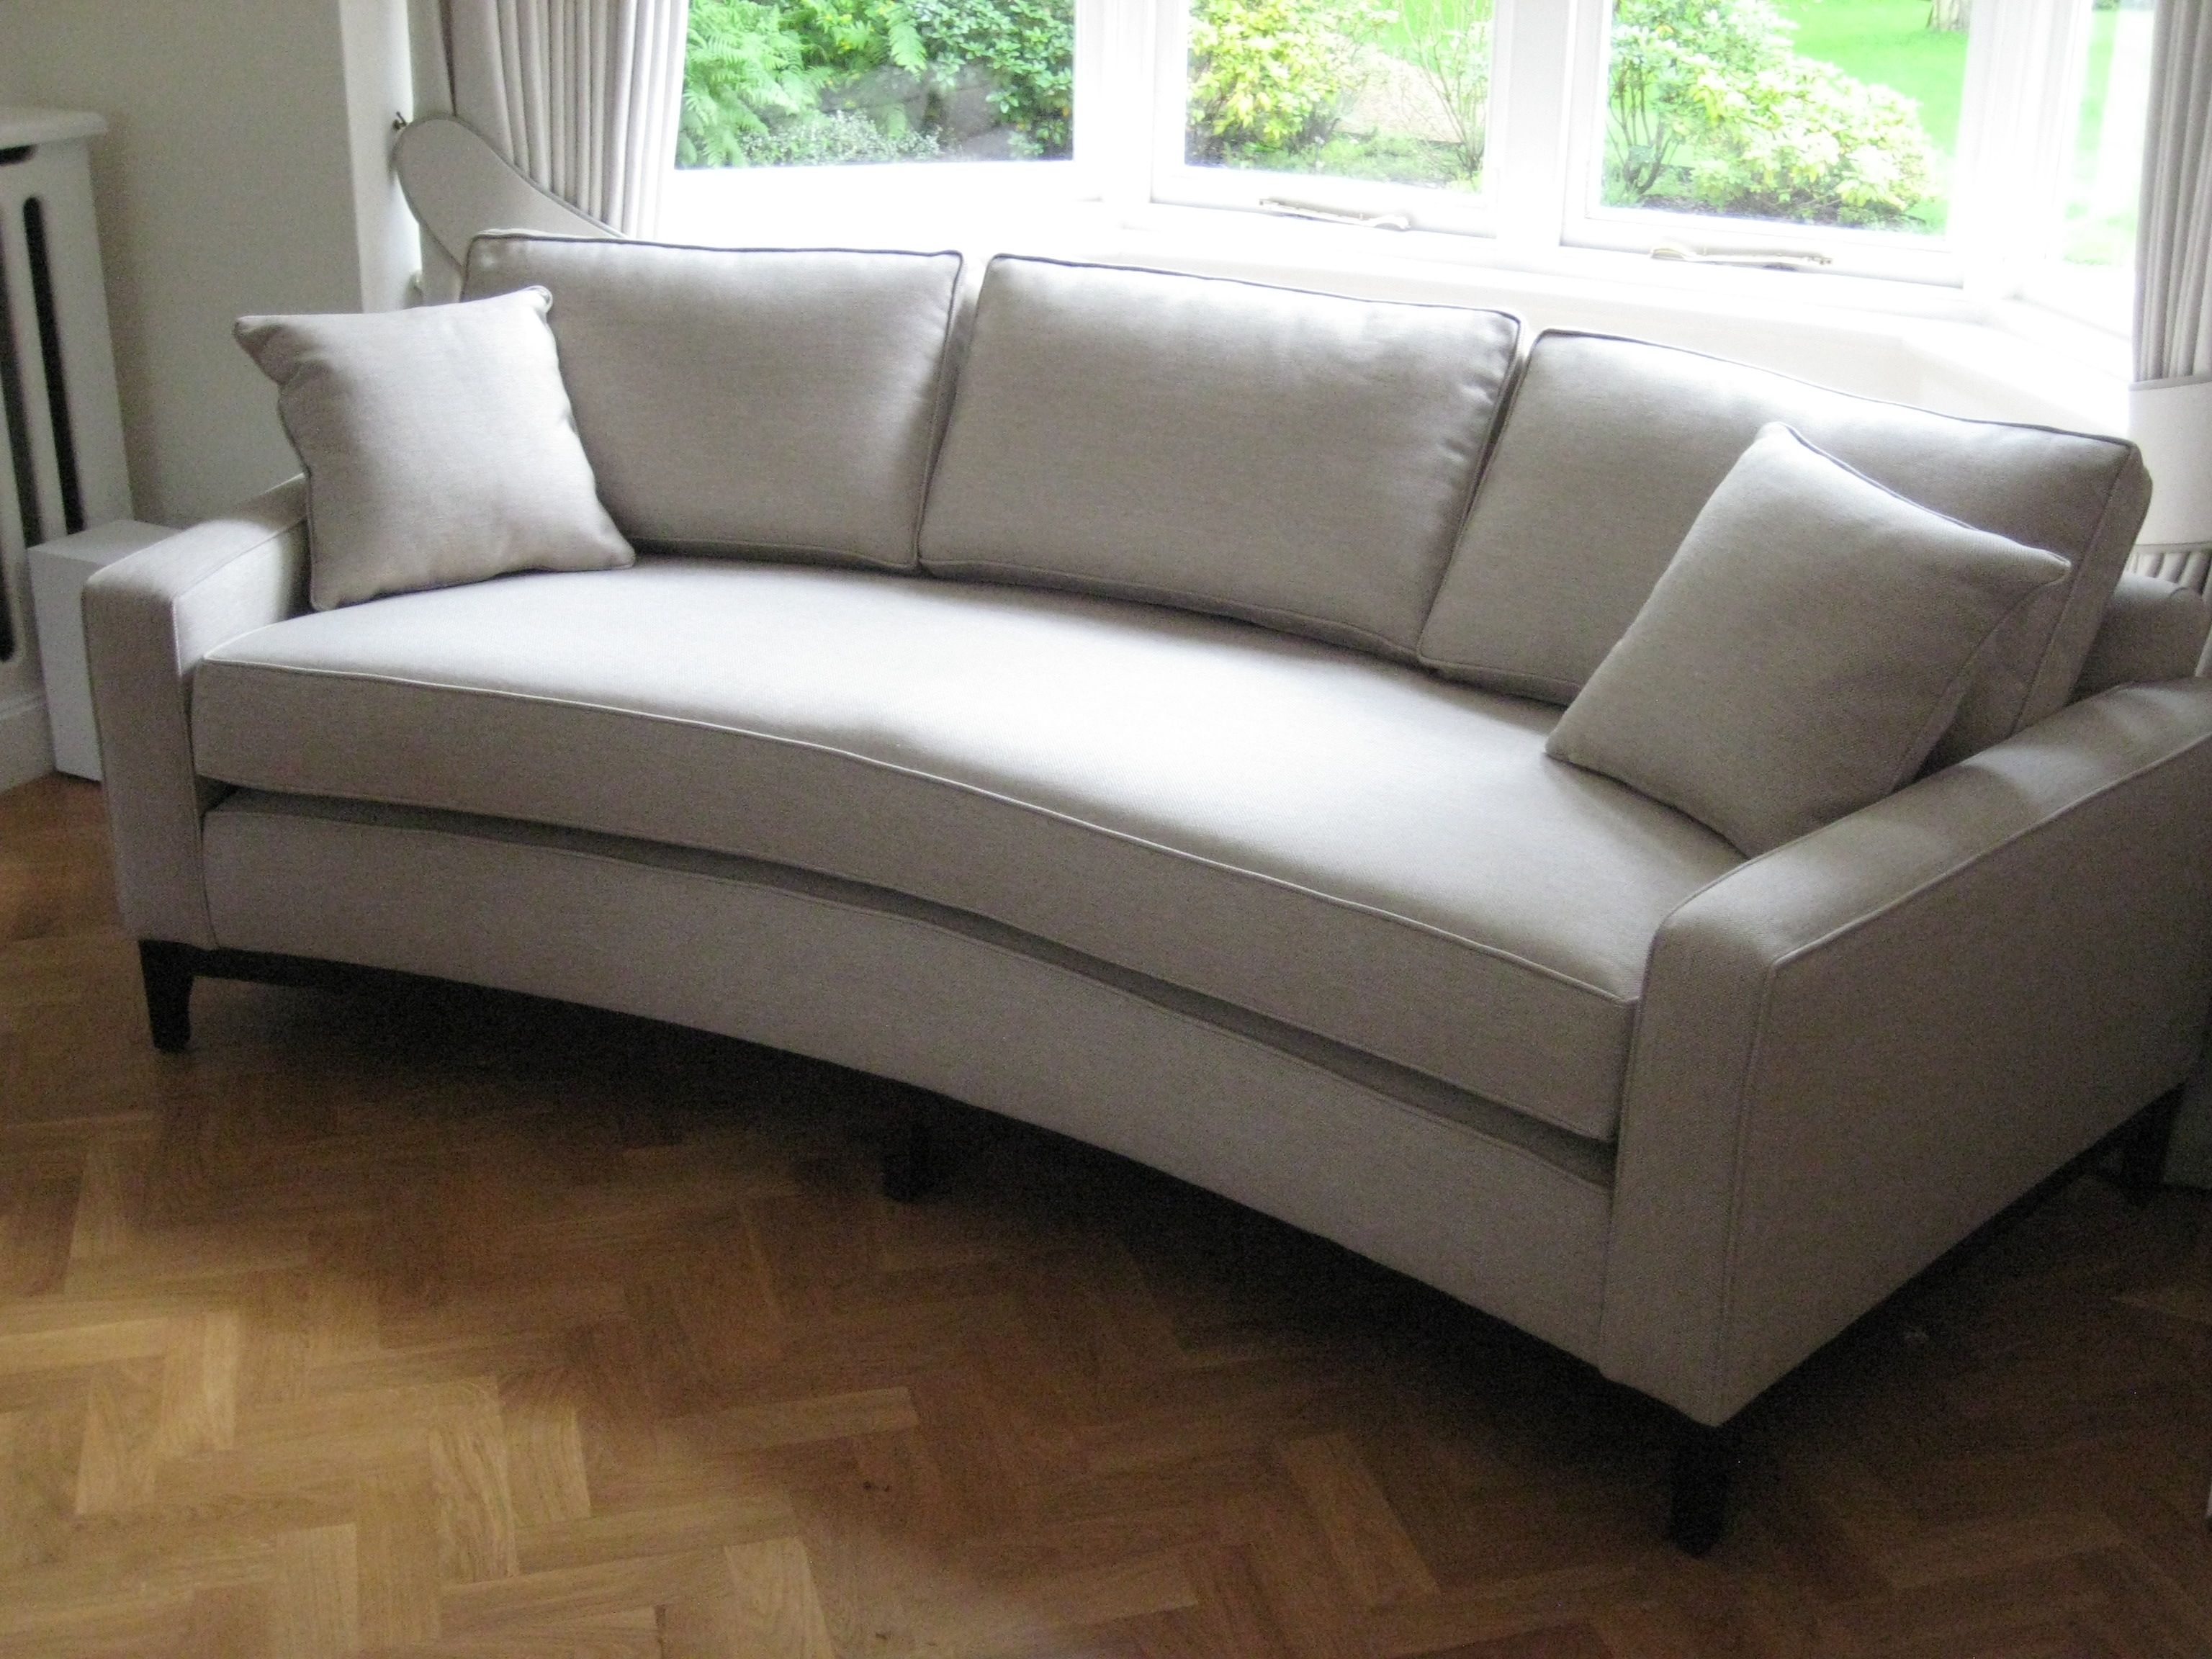 Sofas Center Curved Back Sofa Sectional Table Sofas For Sale Pertaining To The Bay Sectional Sofas (View 8 of 10)